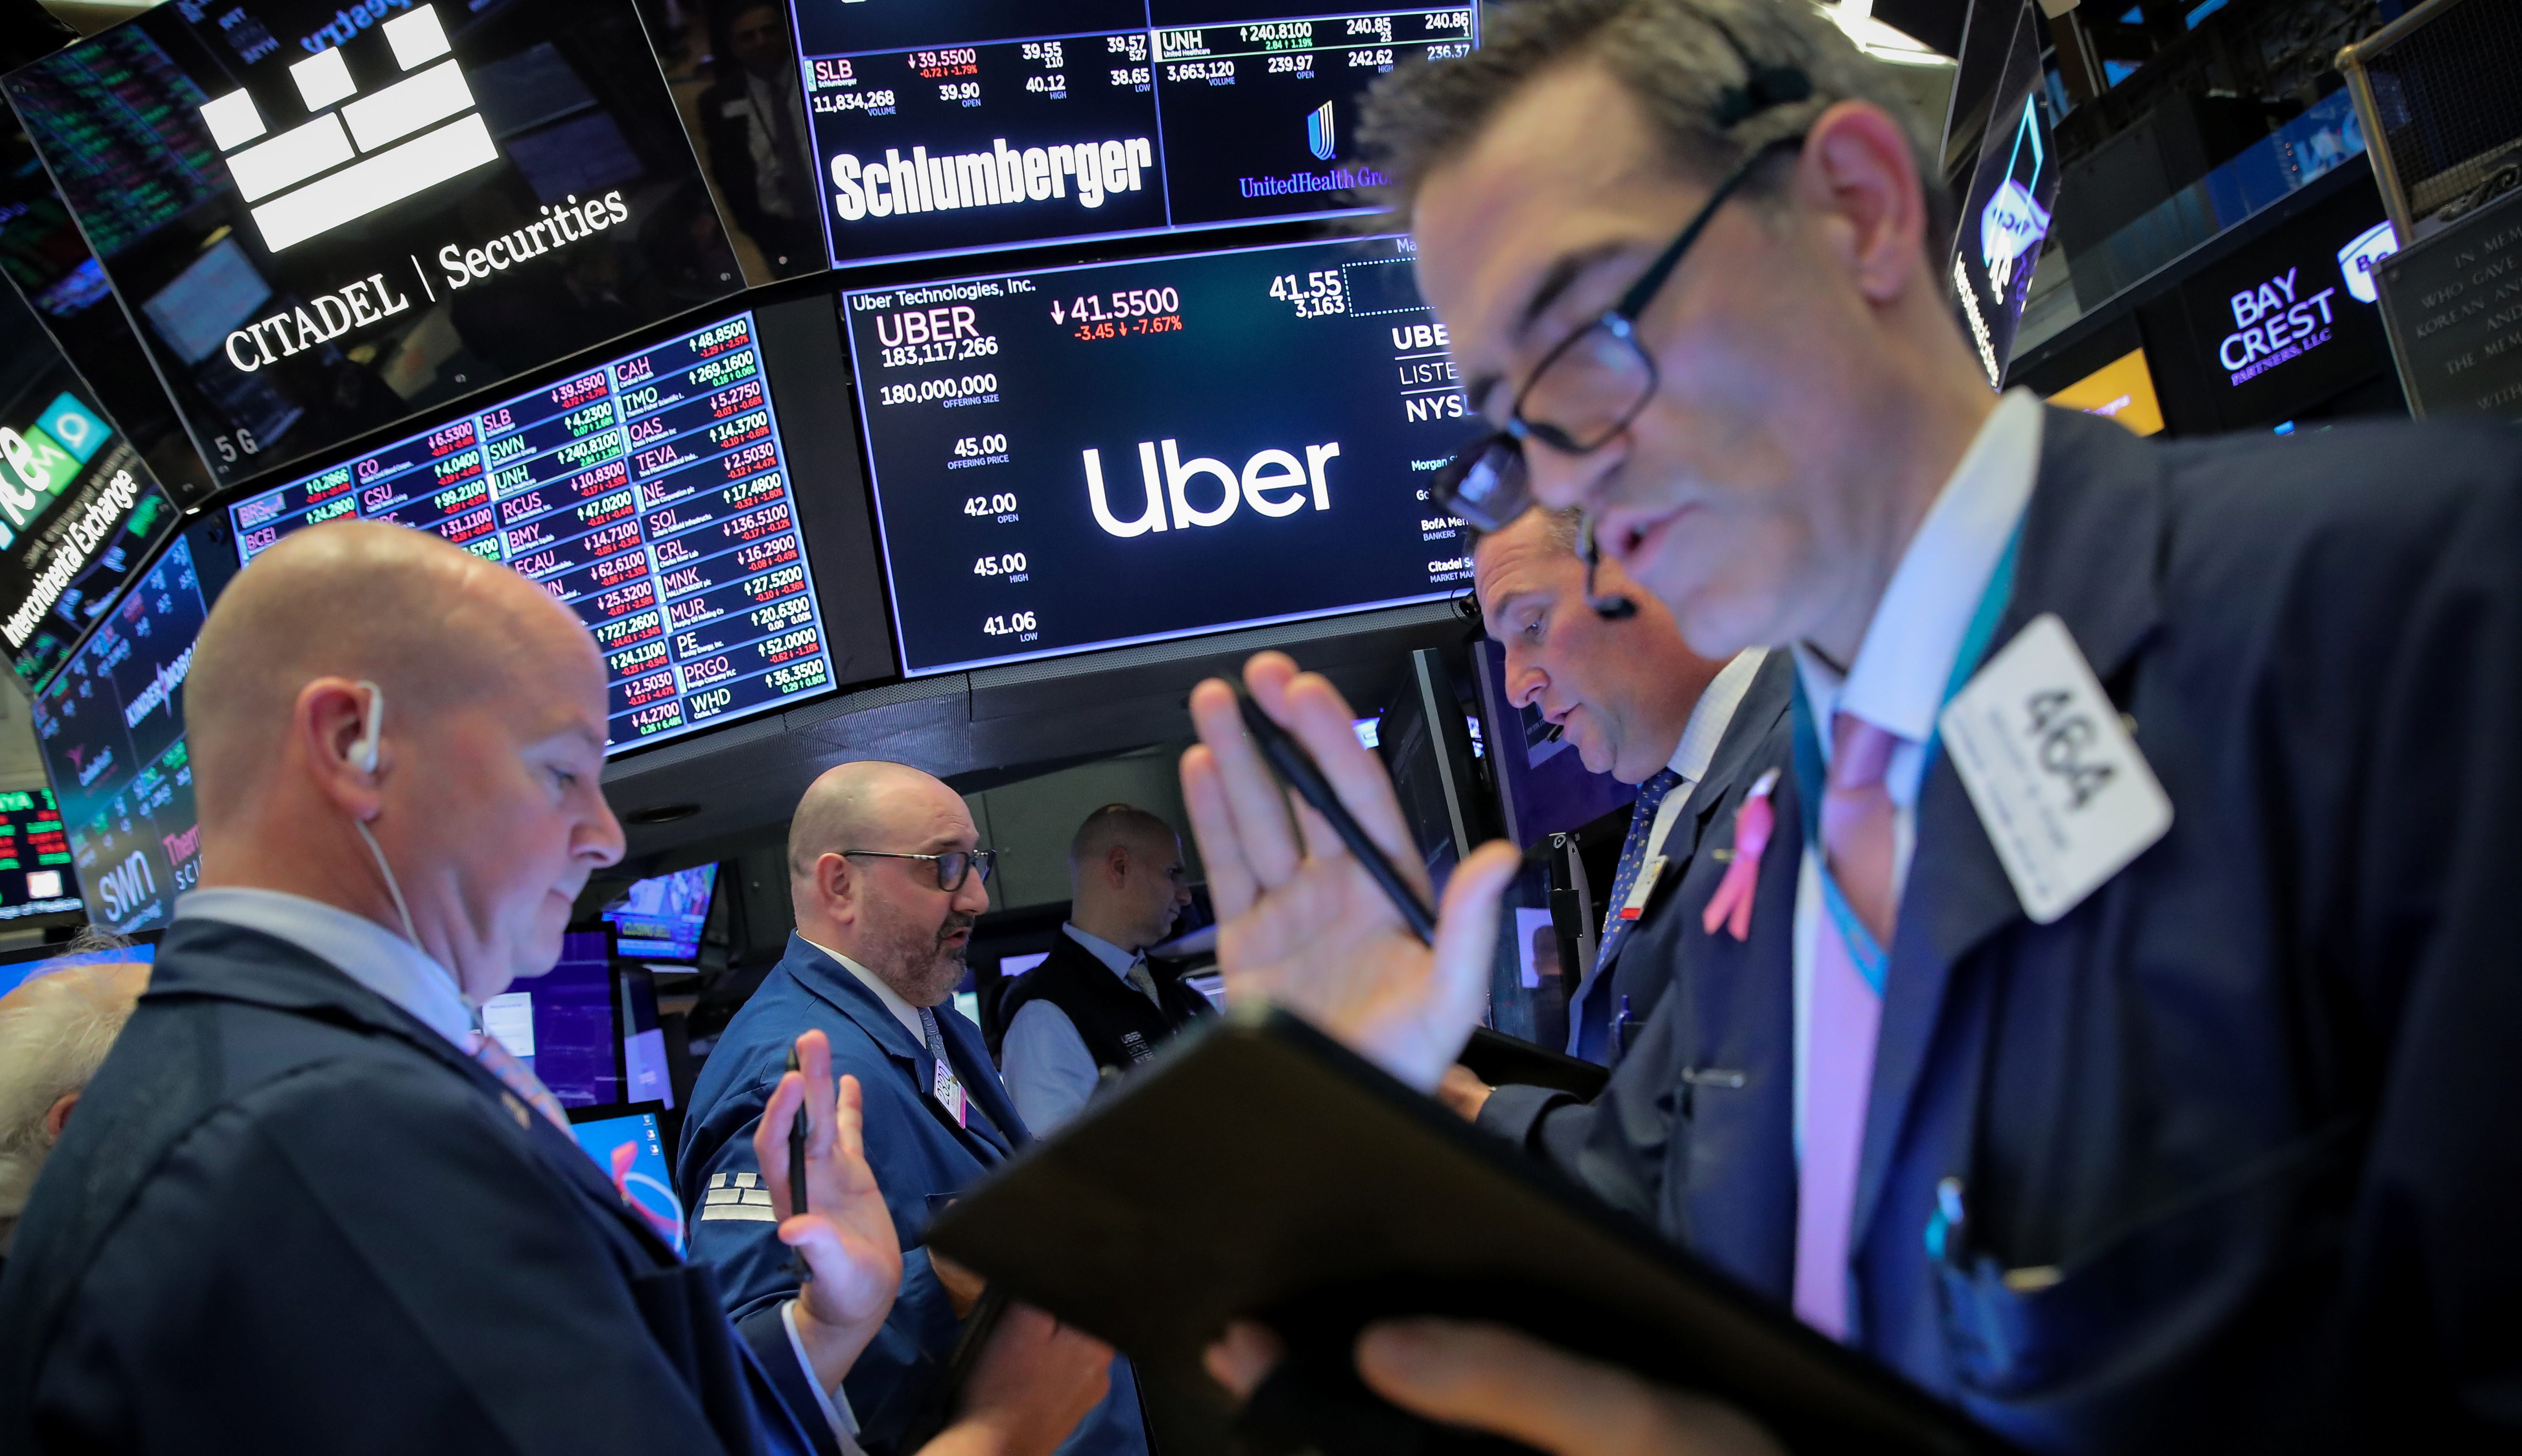 Uber falls to lowest valuation since July 2015 two days